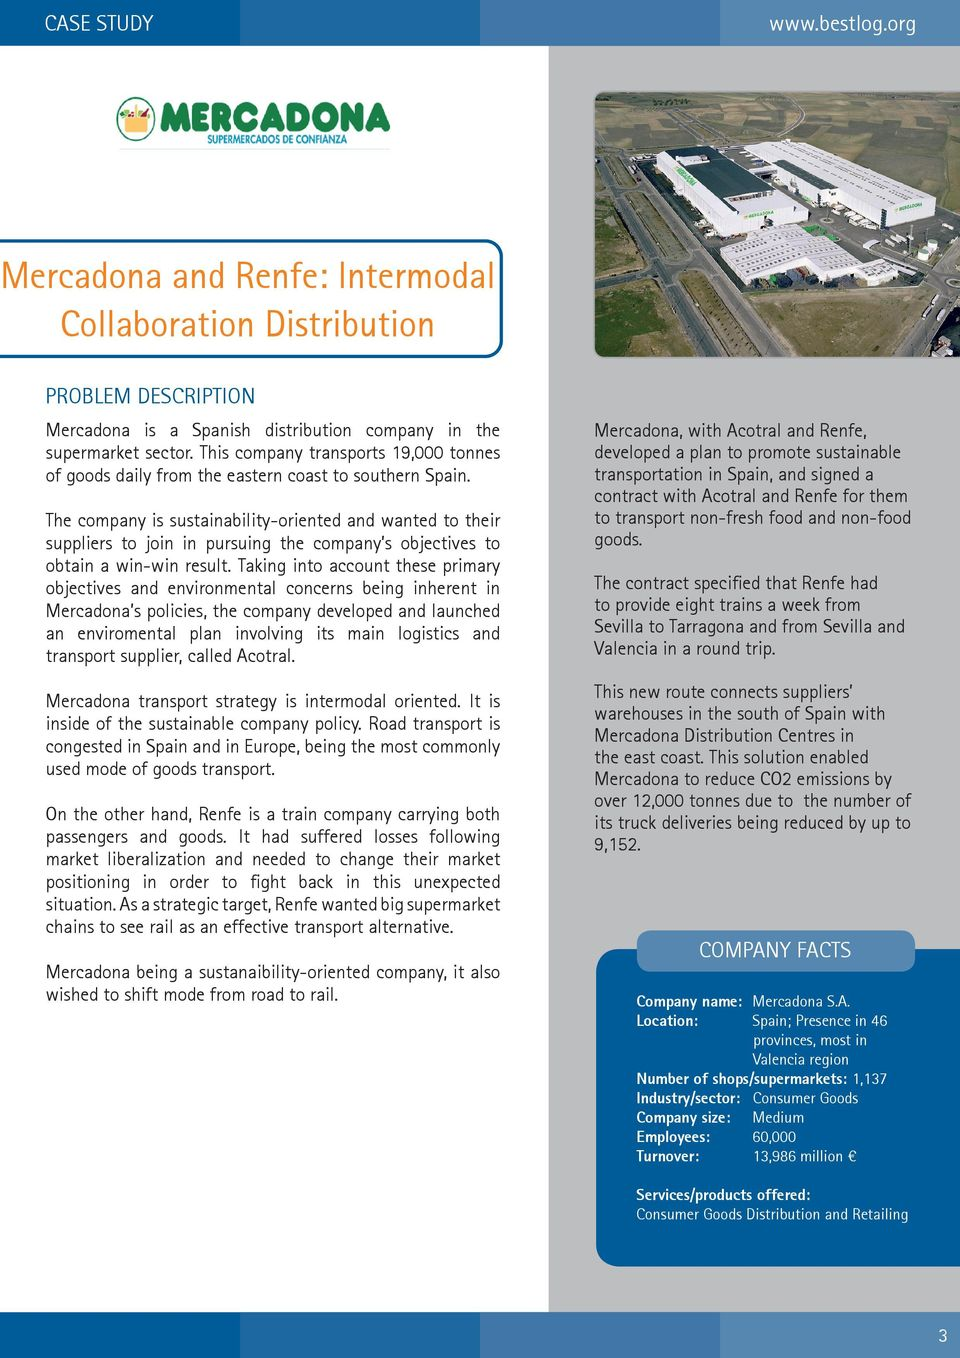 Case Study  Mercadona and Renfe: Intermodal Collaboration